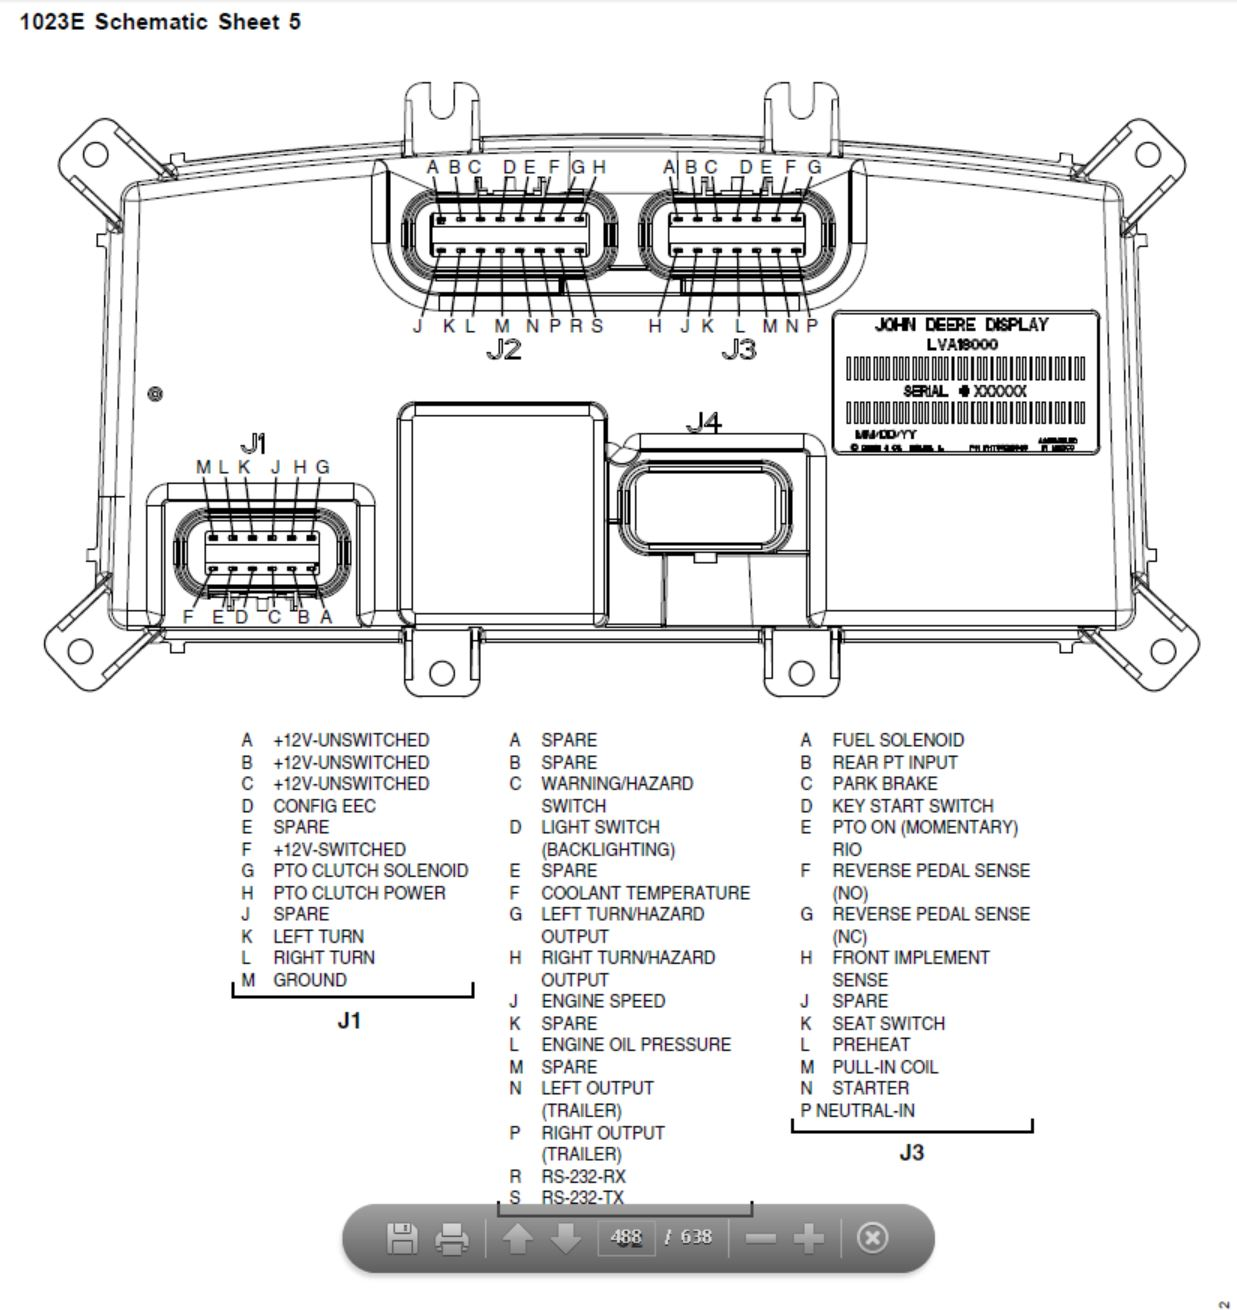 Wiring Manual PDF: 1023e John Deere Fuse Box Location